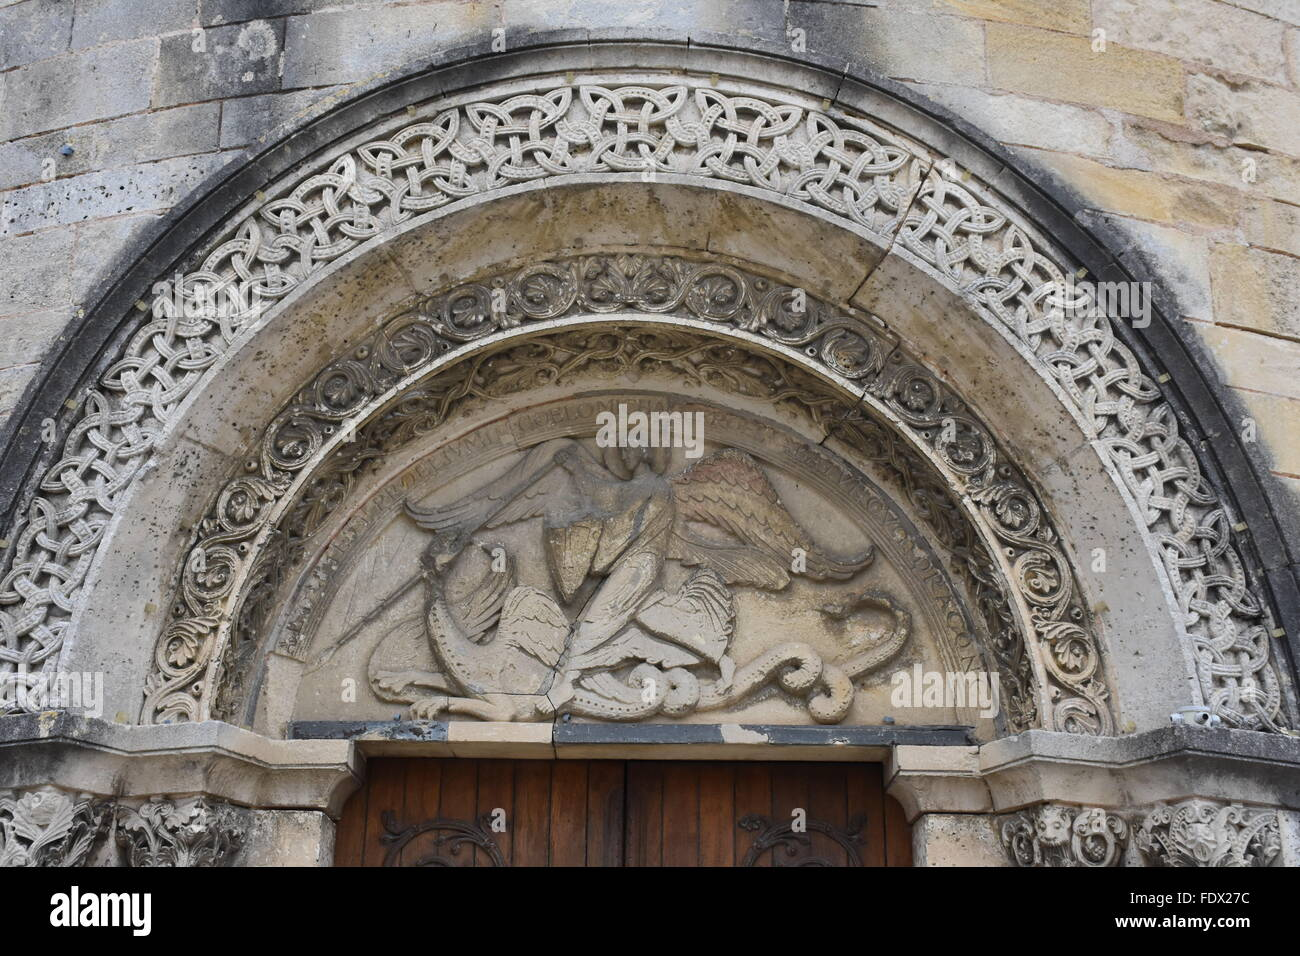 Tympanum of the Eglise de Saint-Michel in the outskirts of Angouleme France, showing the archangel St Michael slaying - Stock Image